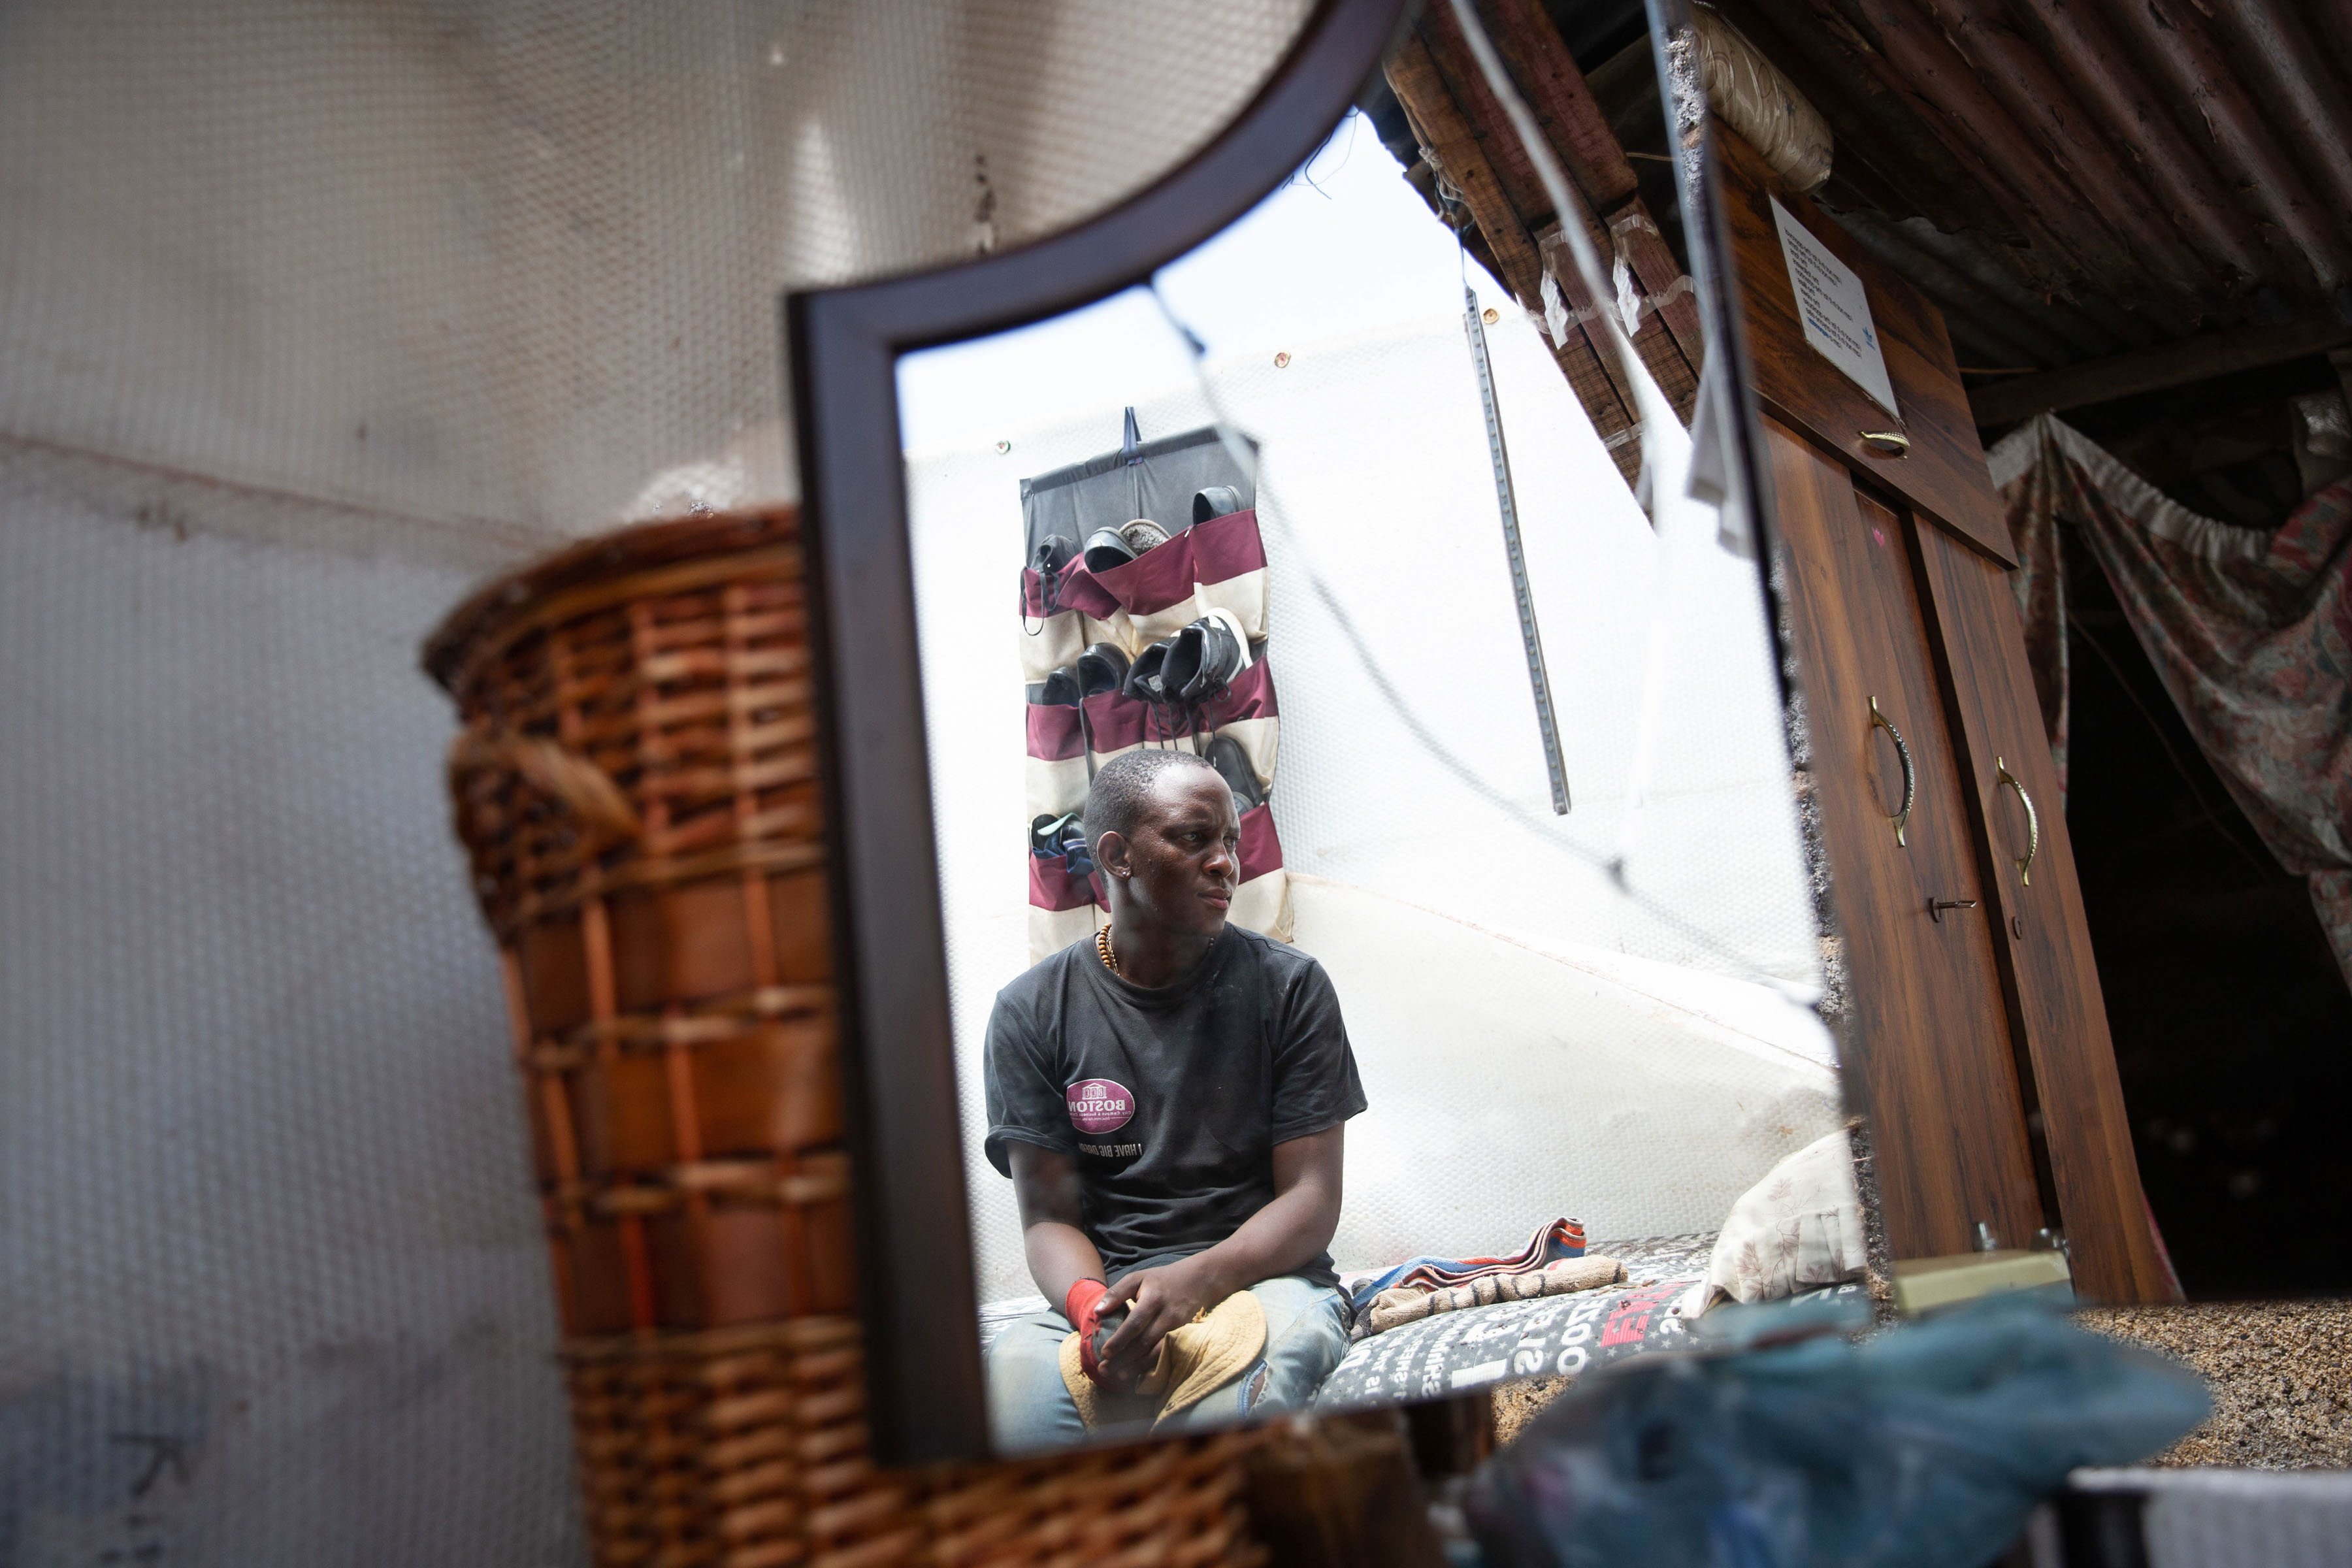 21 November 2019. Motshehwa Mmifi's son, Tshepo Mmifi, in his partially demolished room. The roof was removed and rain soaked his bed and clothes. His mirror was also broken.